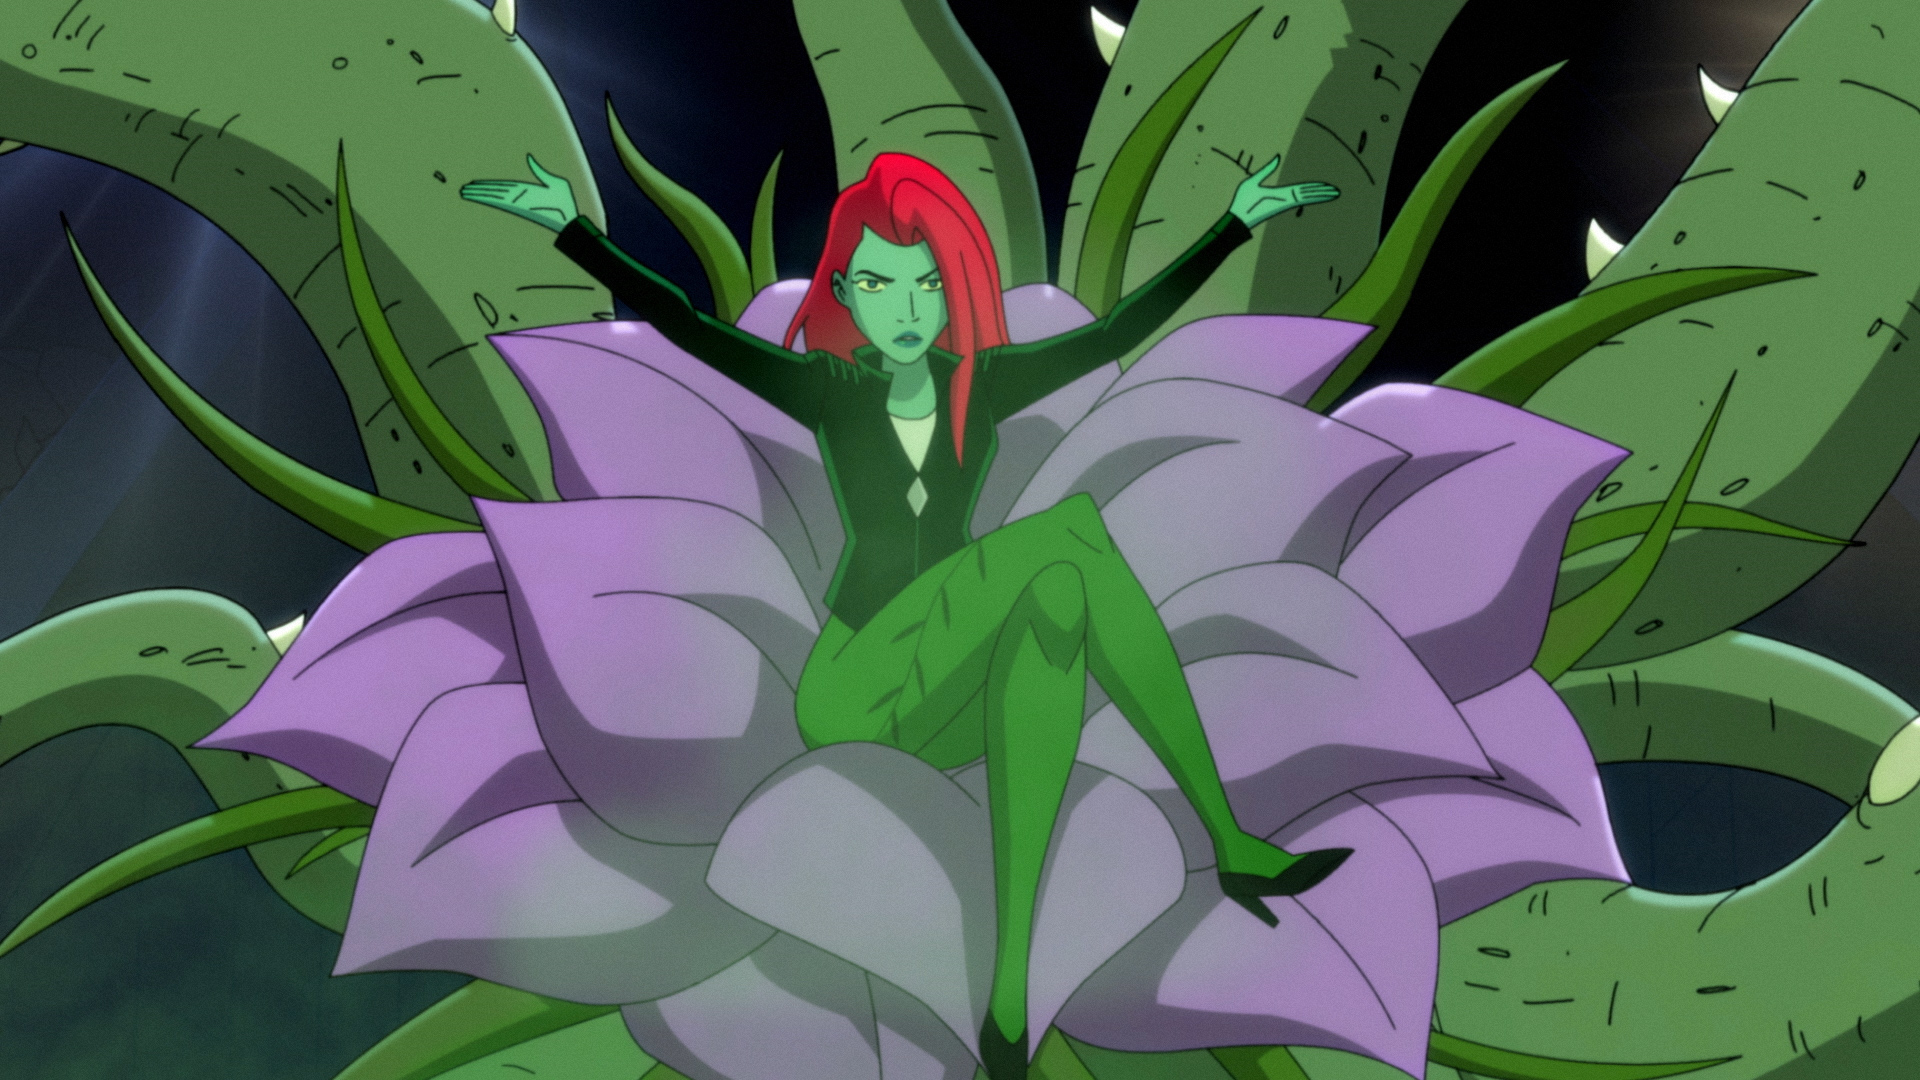 Poison Ivy in a flower, Season 1 of 'Harley Quinn'